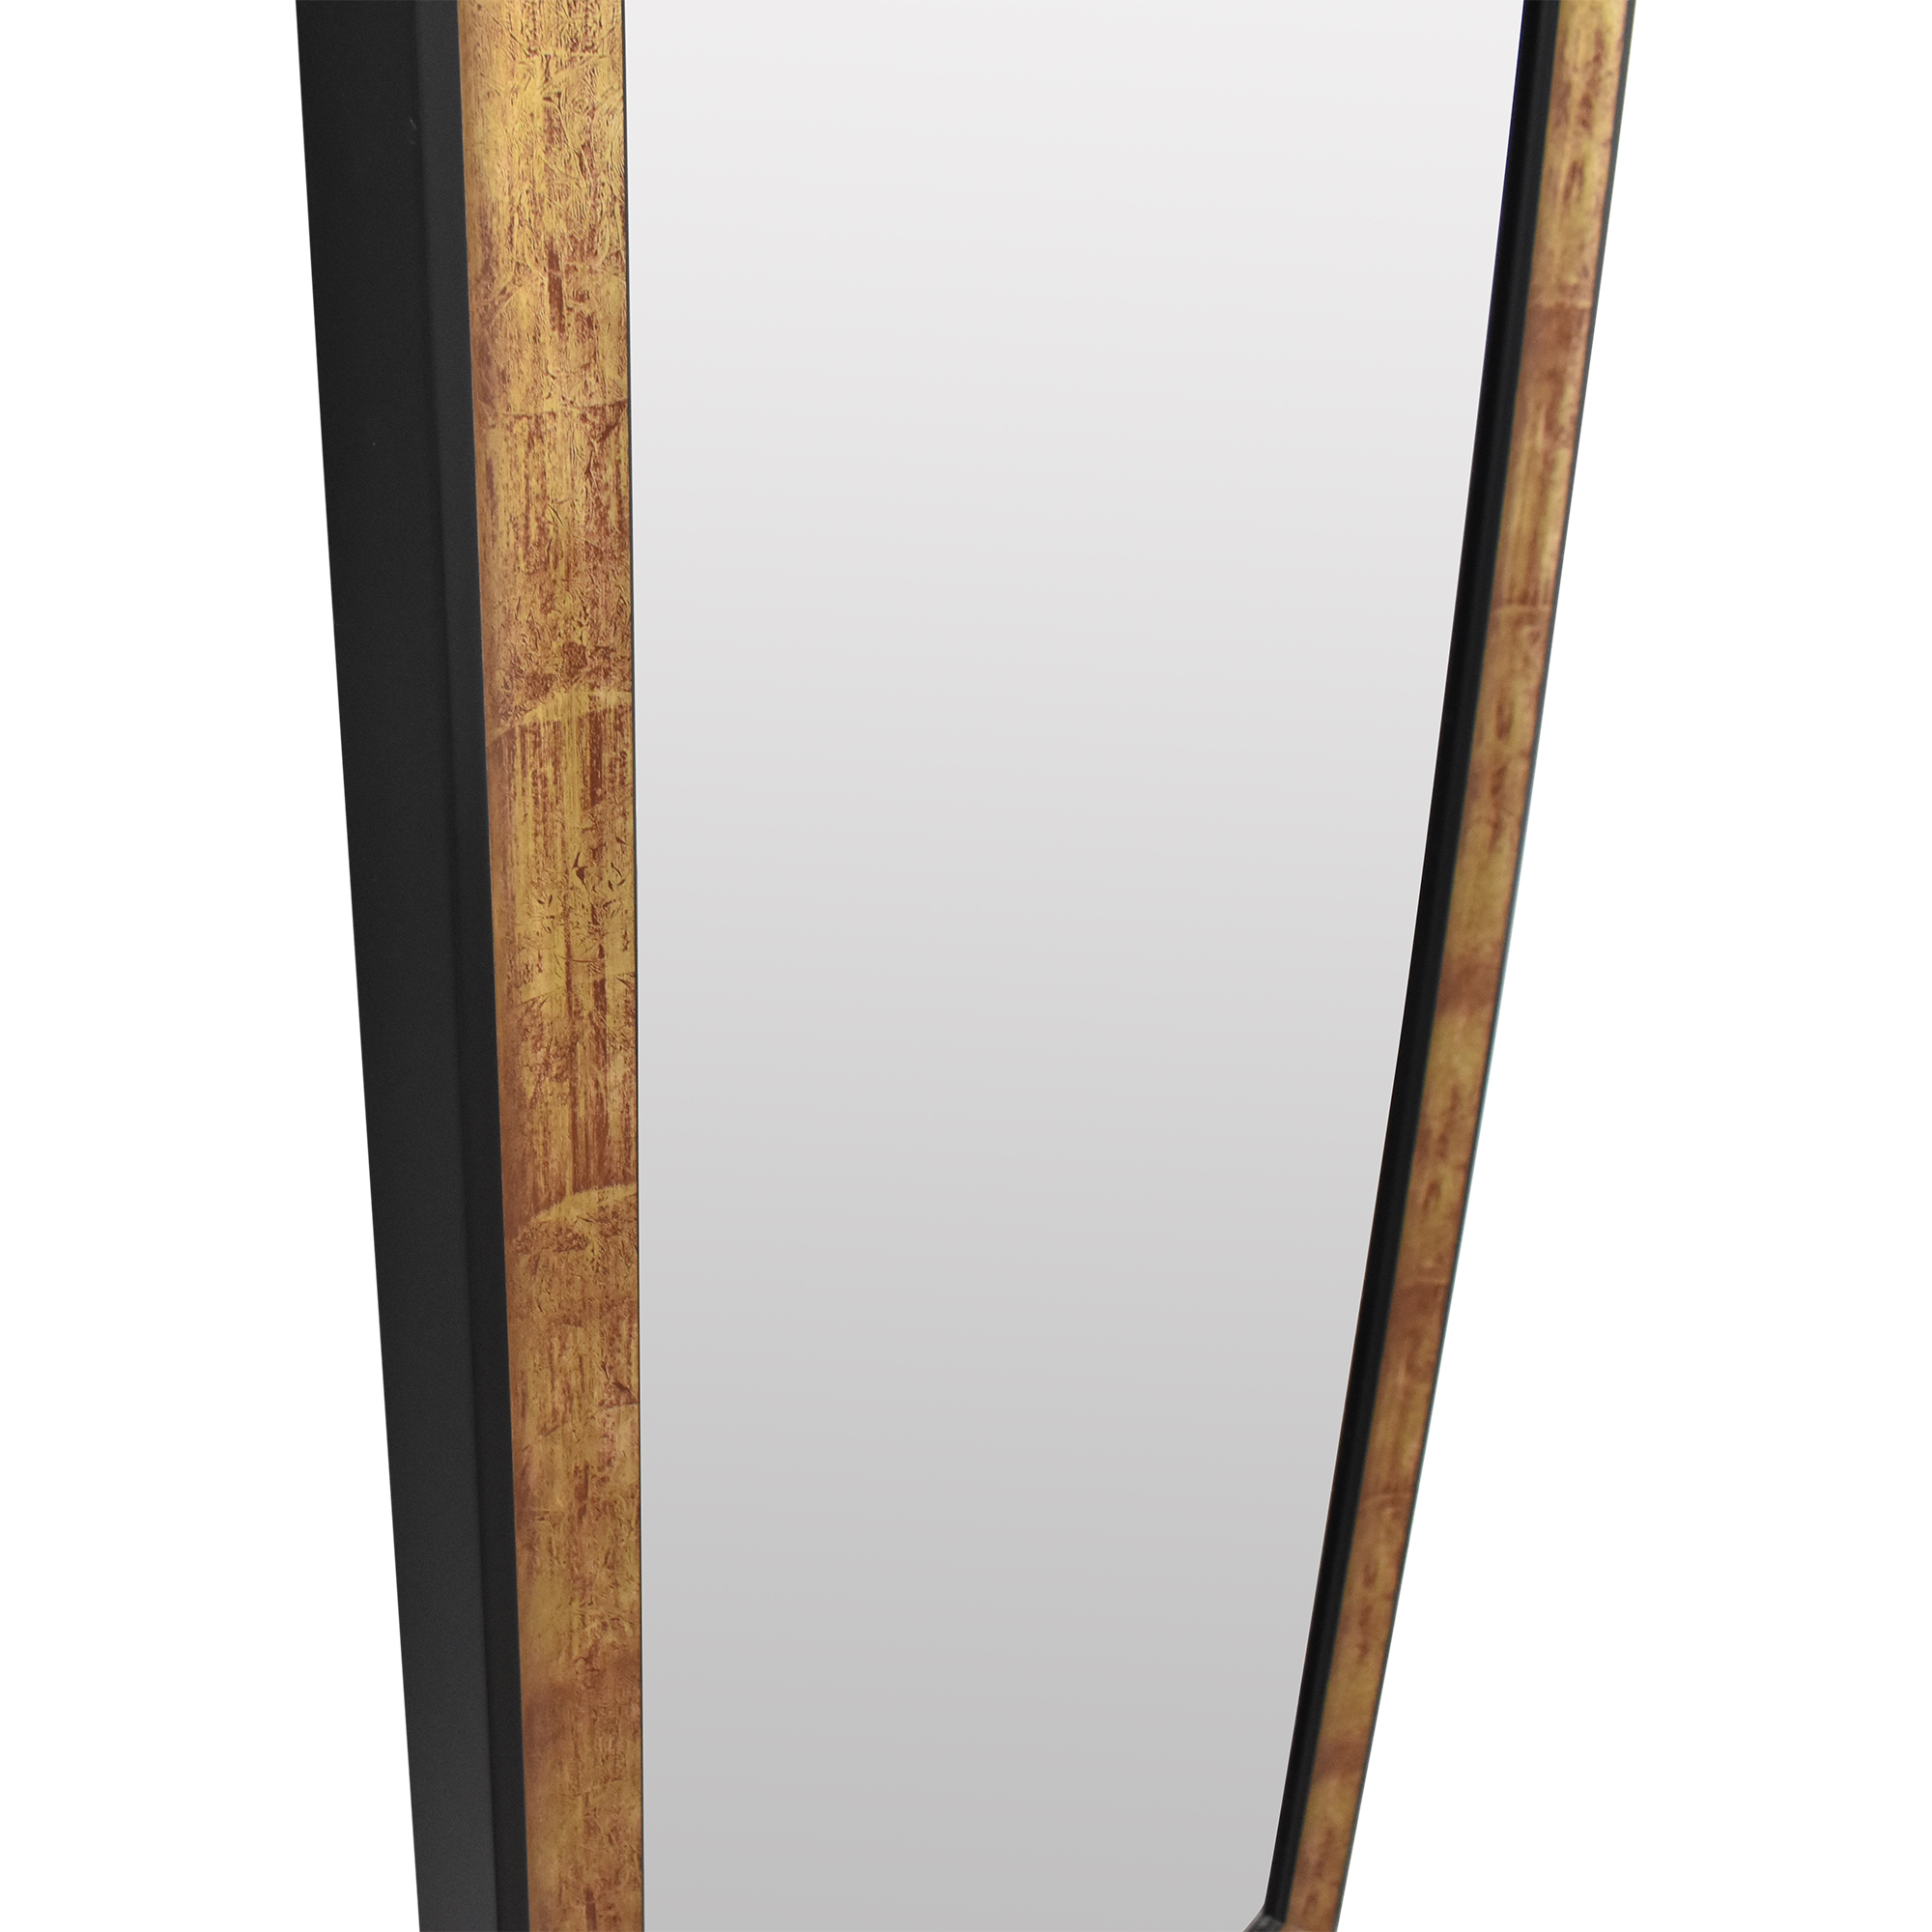 John-Richard John-Richard Framed Wall Mirror price